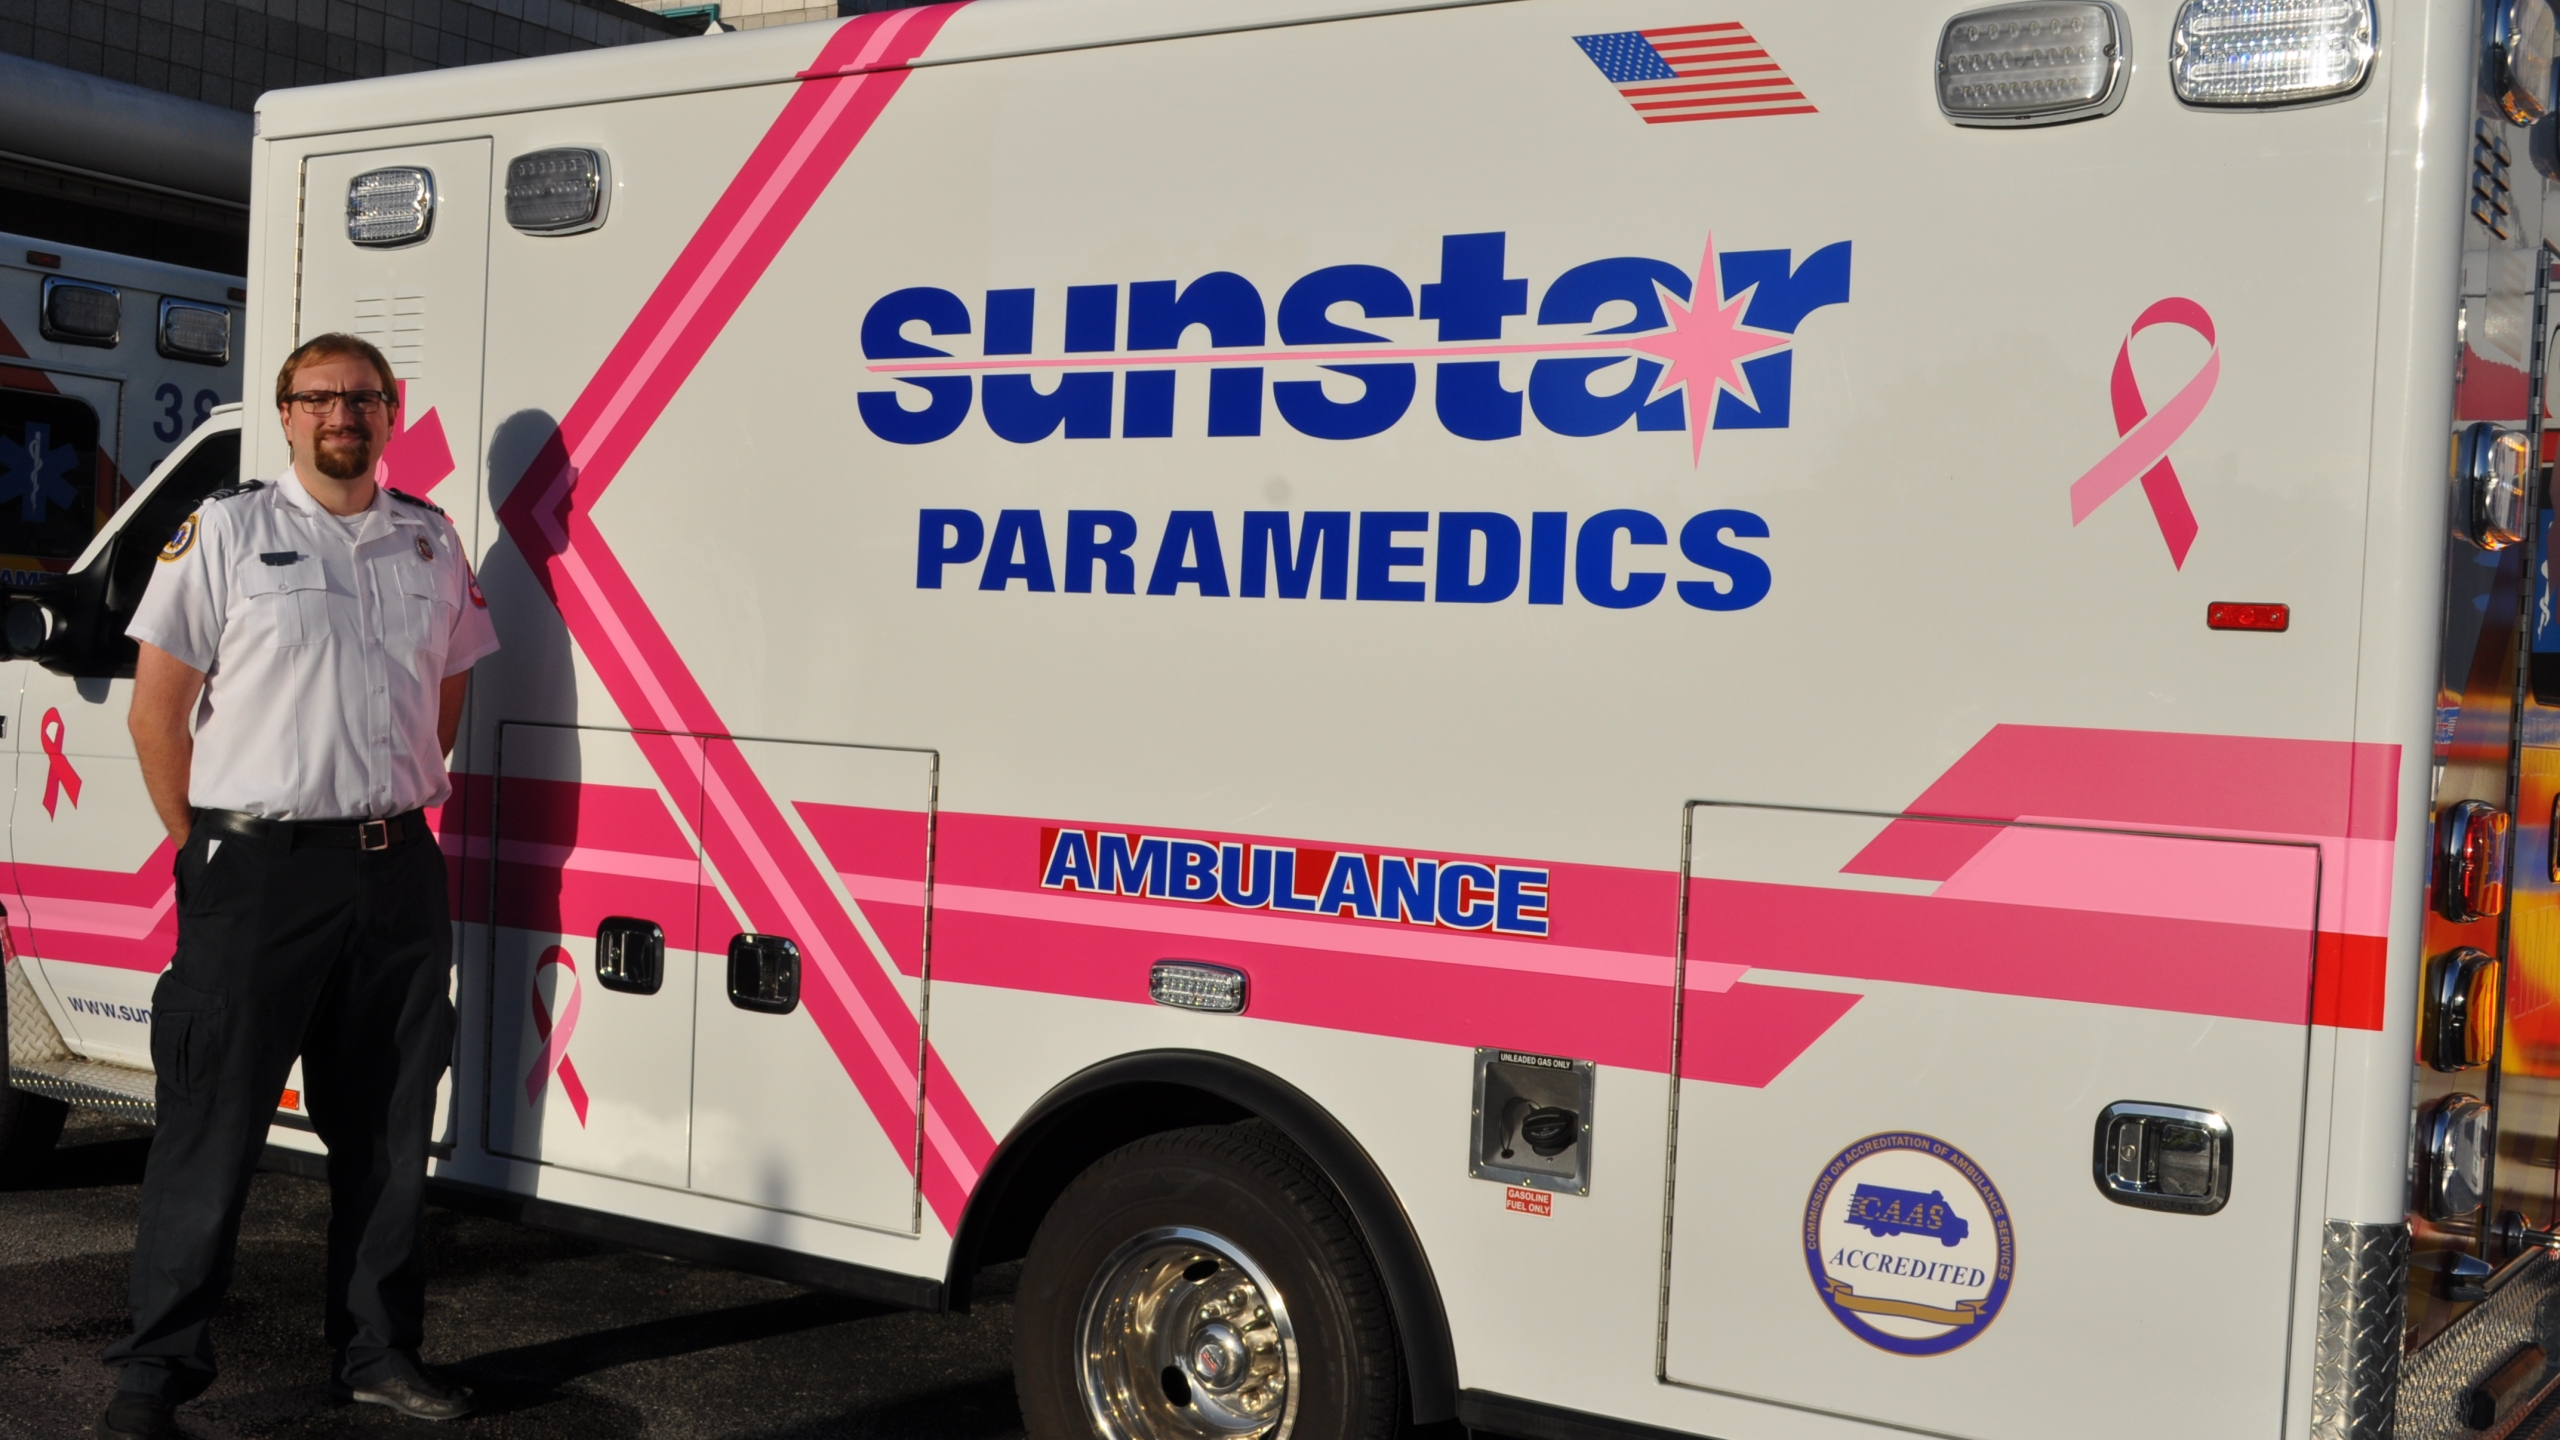 Bobby Stanley with Sunstar's pink ambulance_476949-846652698